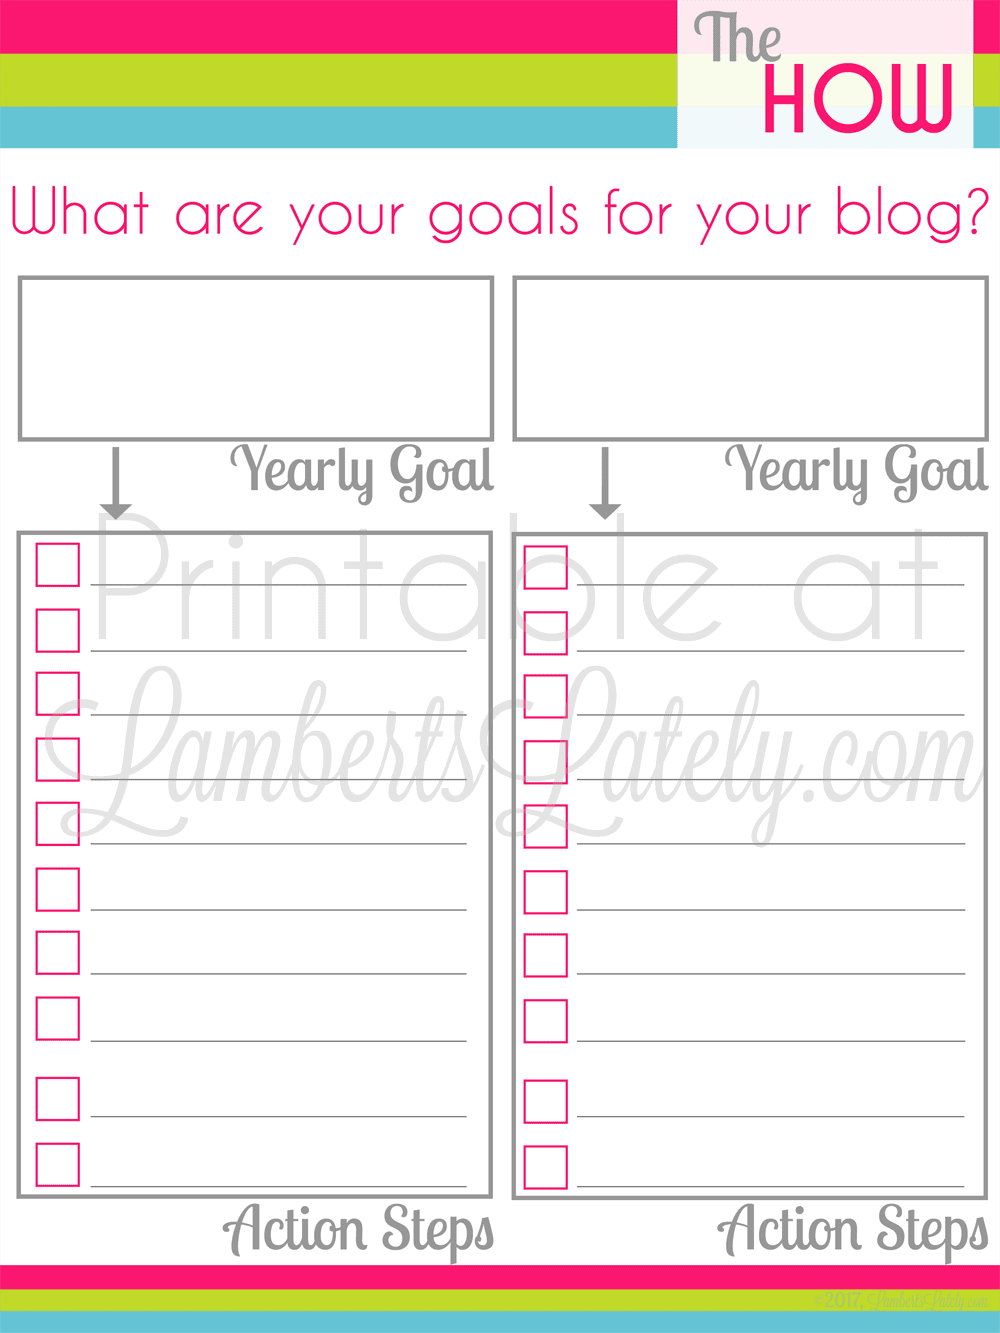 This is a great set of free blogging printables for new bloggers! This planner helps you find a focus, demographic, and goals for your blog before you start. Great set for organizing your 2017 blog!